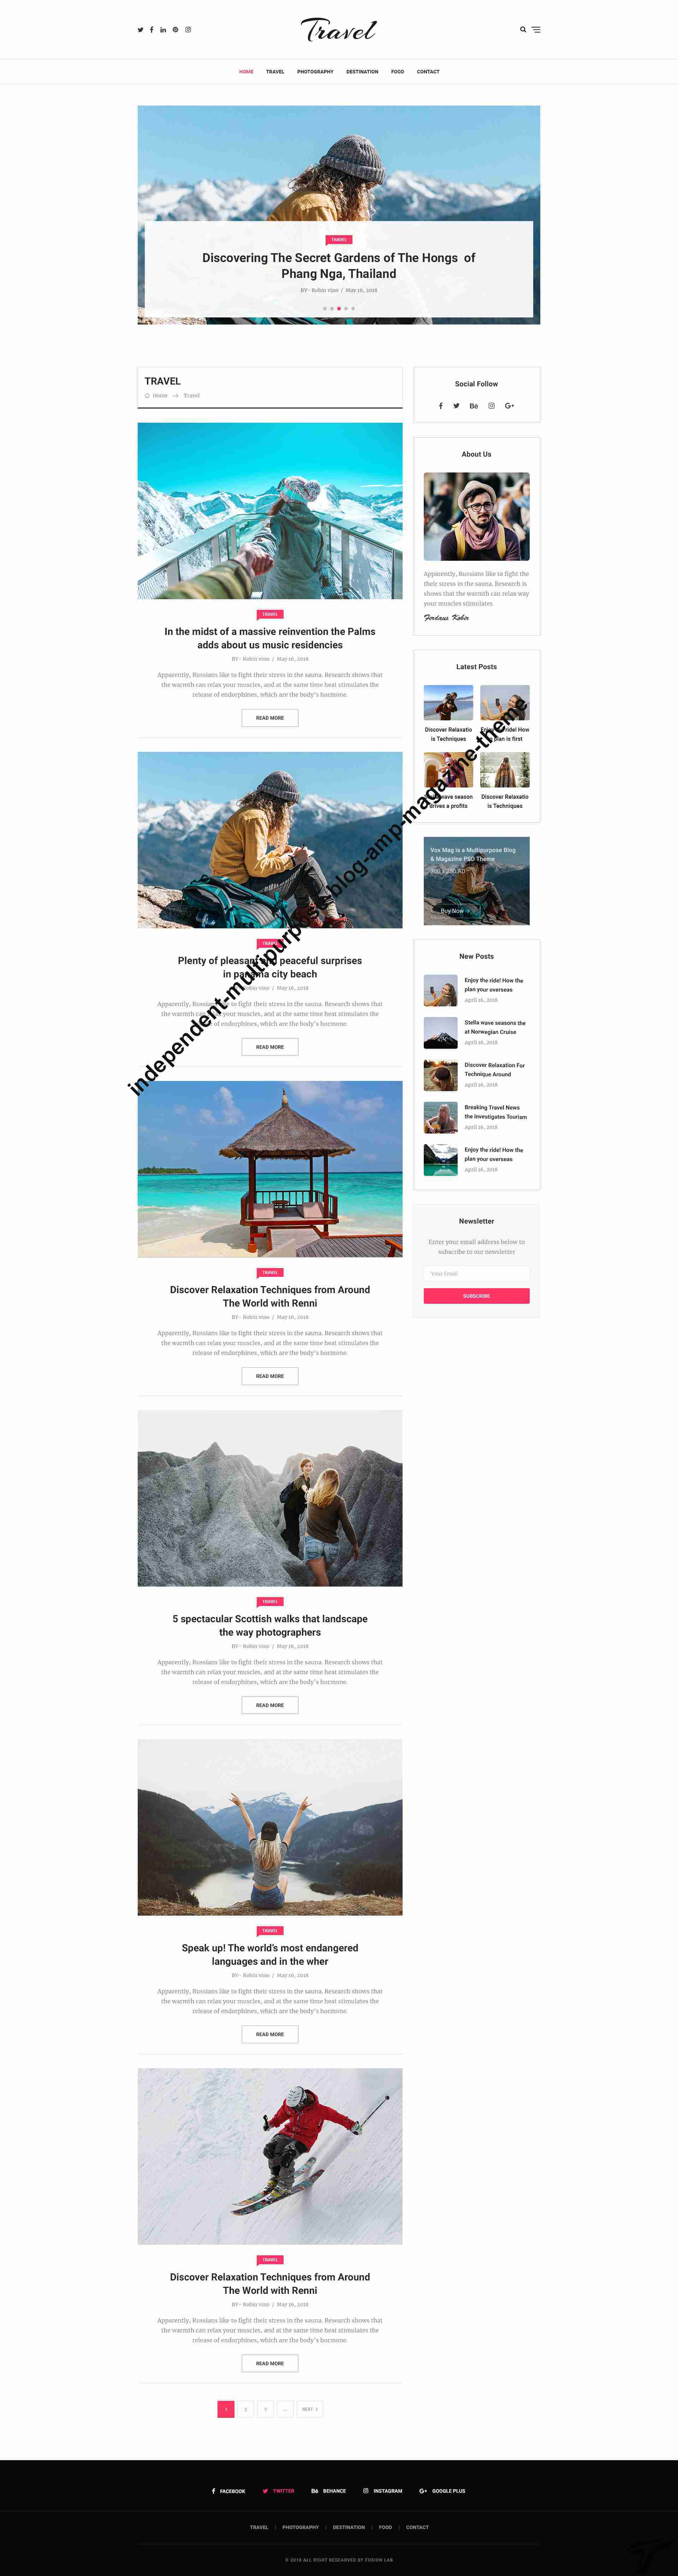 https://images.besthemes.com/images/h1_independent-multipurpose-blog-amp-magazine-theme26-_-249989416/Theme-s20s-Preview/25-Listing-s20s-Blog.jpg